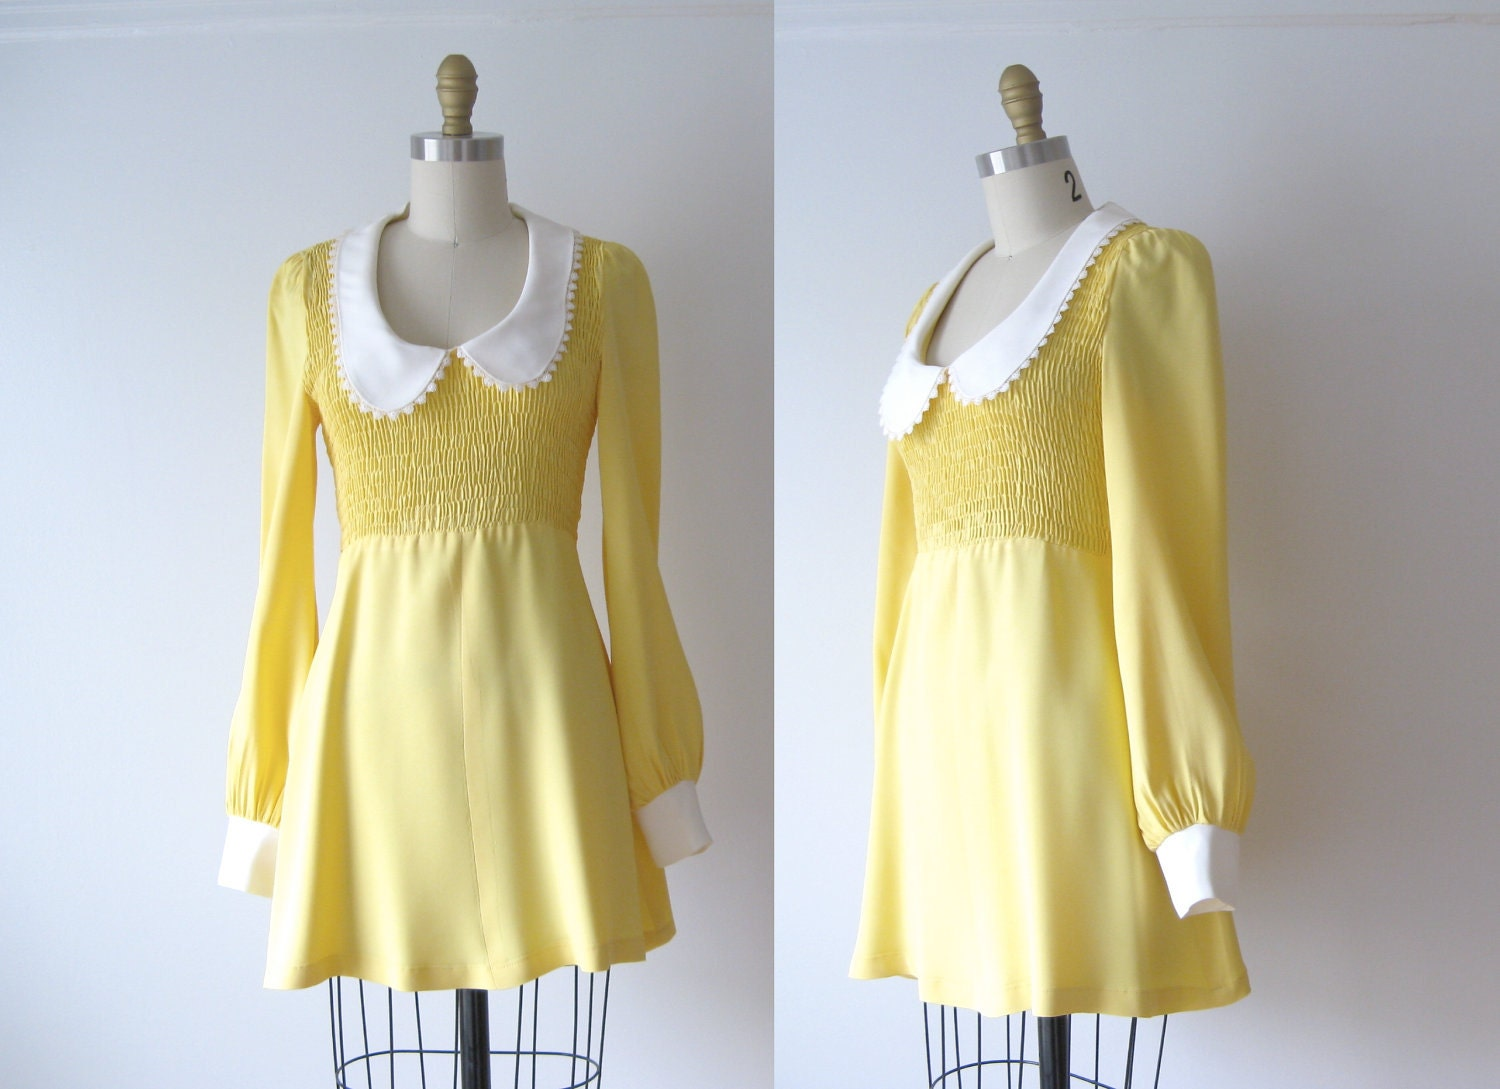 Vintage Mini Dress 60s Mod Dress Babydoll Dress